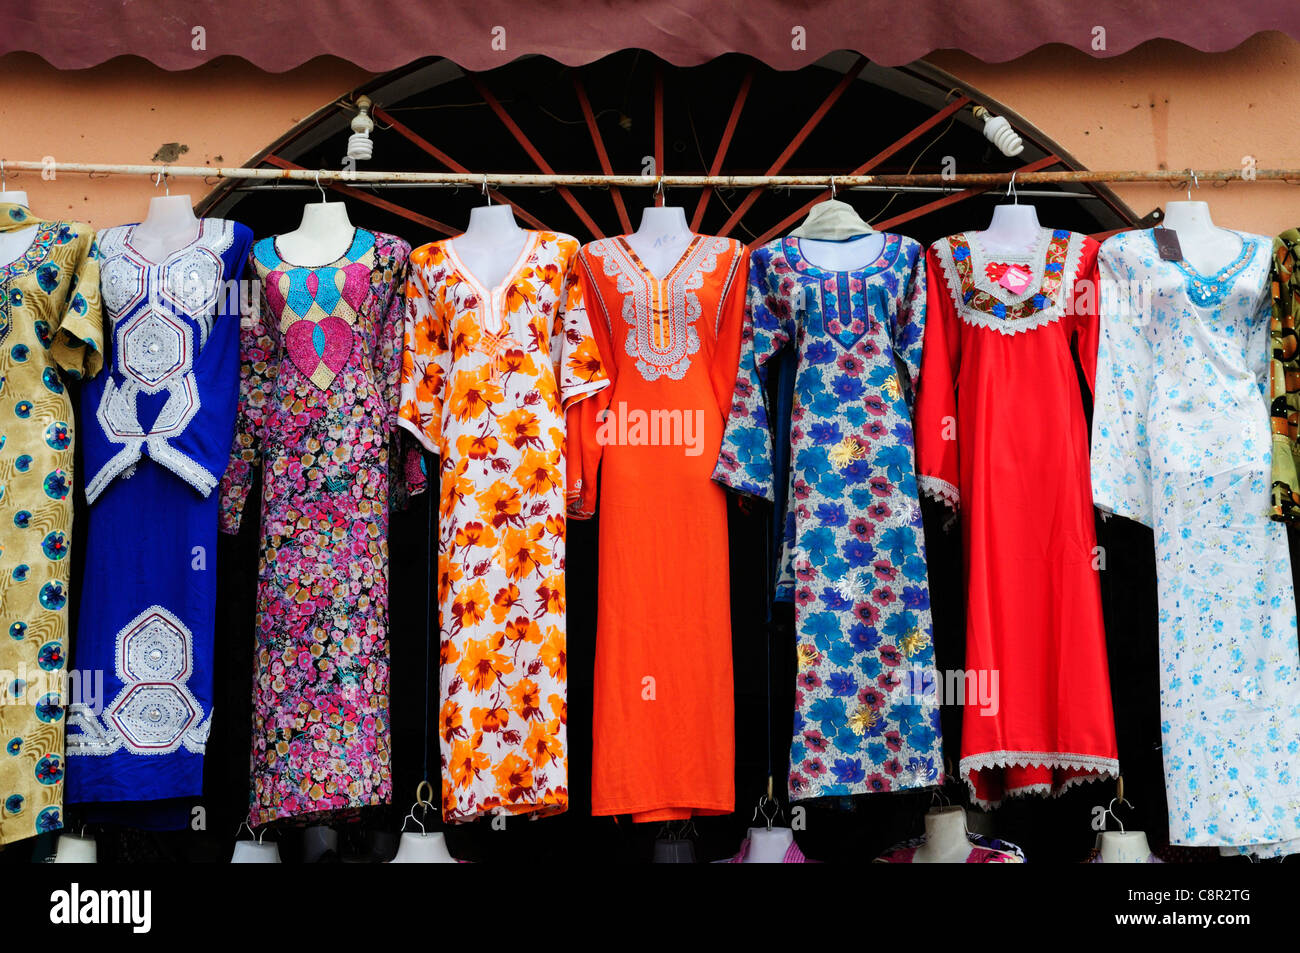 3ba28d4bfc2b8 Moroccan Women's Dresses for Sale, Ouazazate, Morocco Stock Photo ...